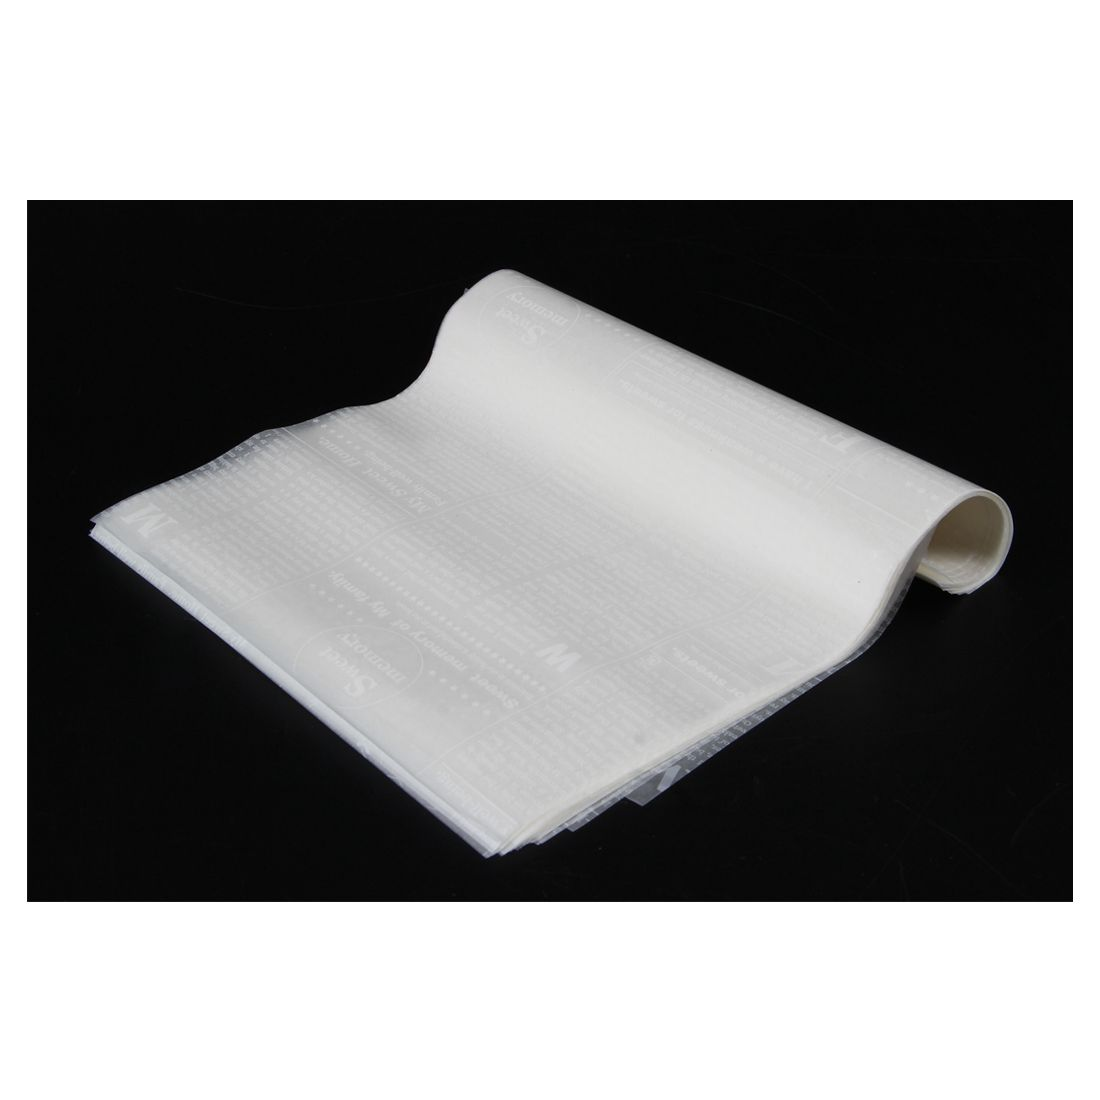 Wax Paper, Food Wrapping Paper, Greaseproof Baking Paper, Soap Packaging Paper (White letter)